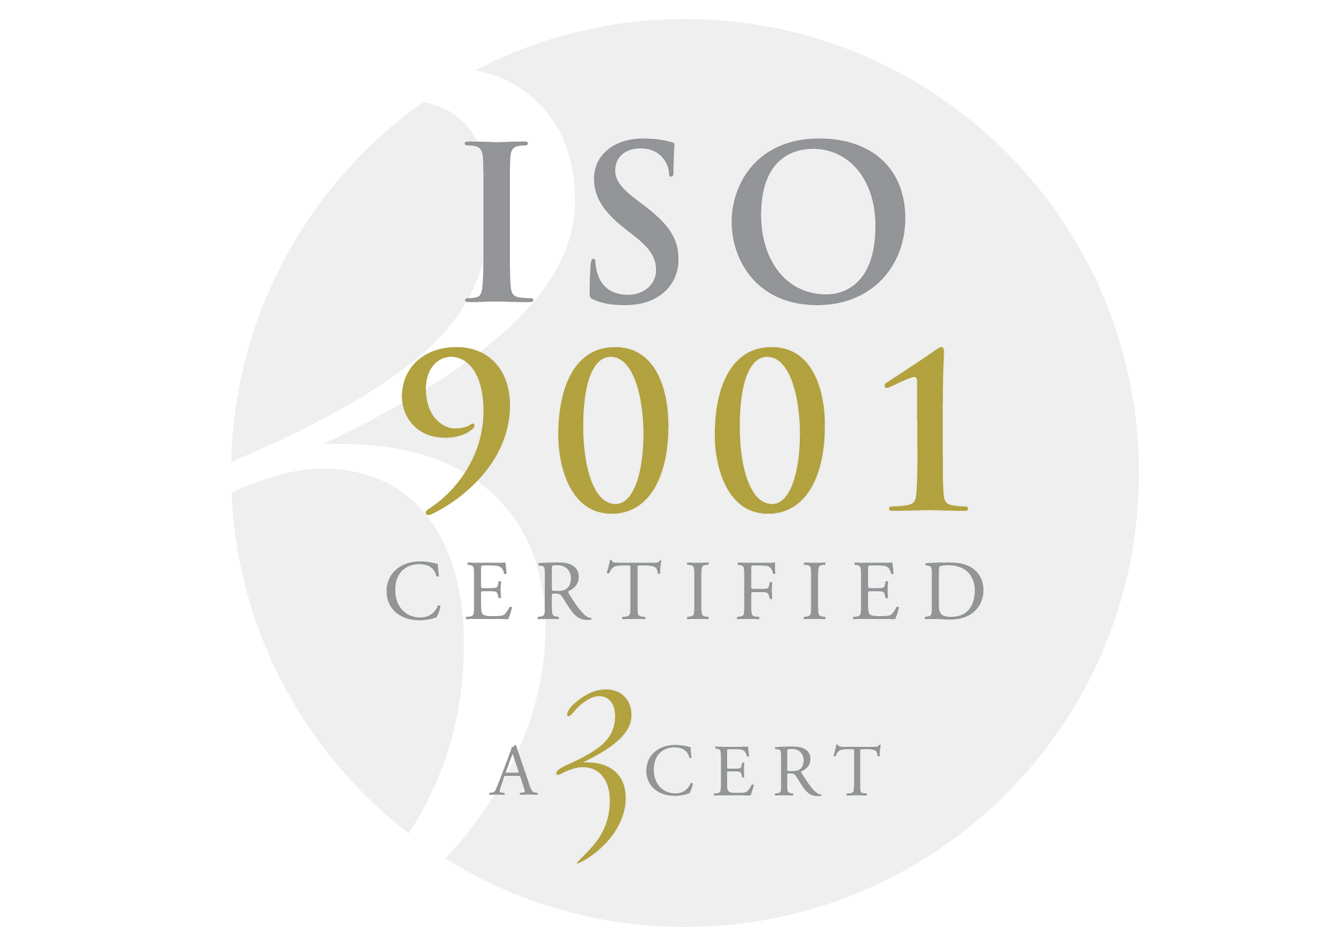 ISO 9001 for continuous improvement